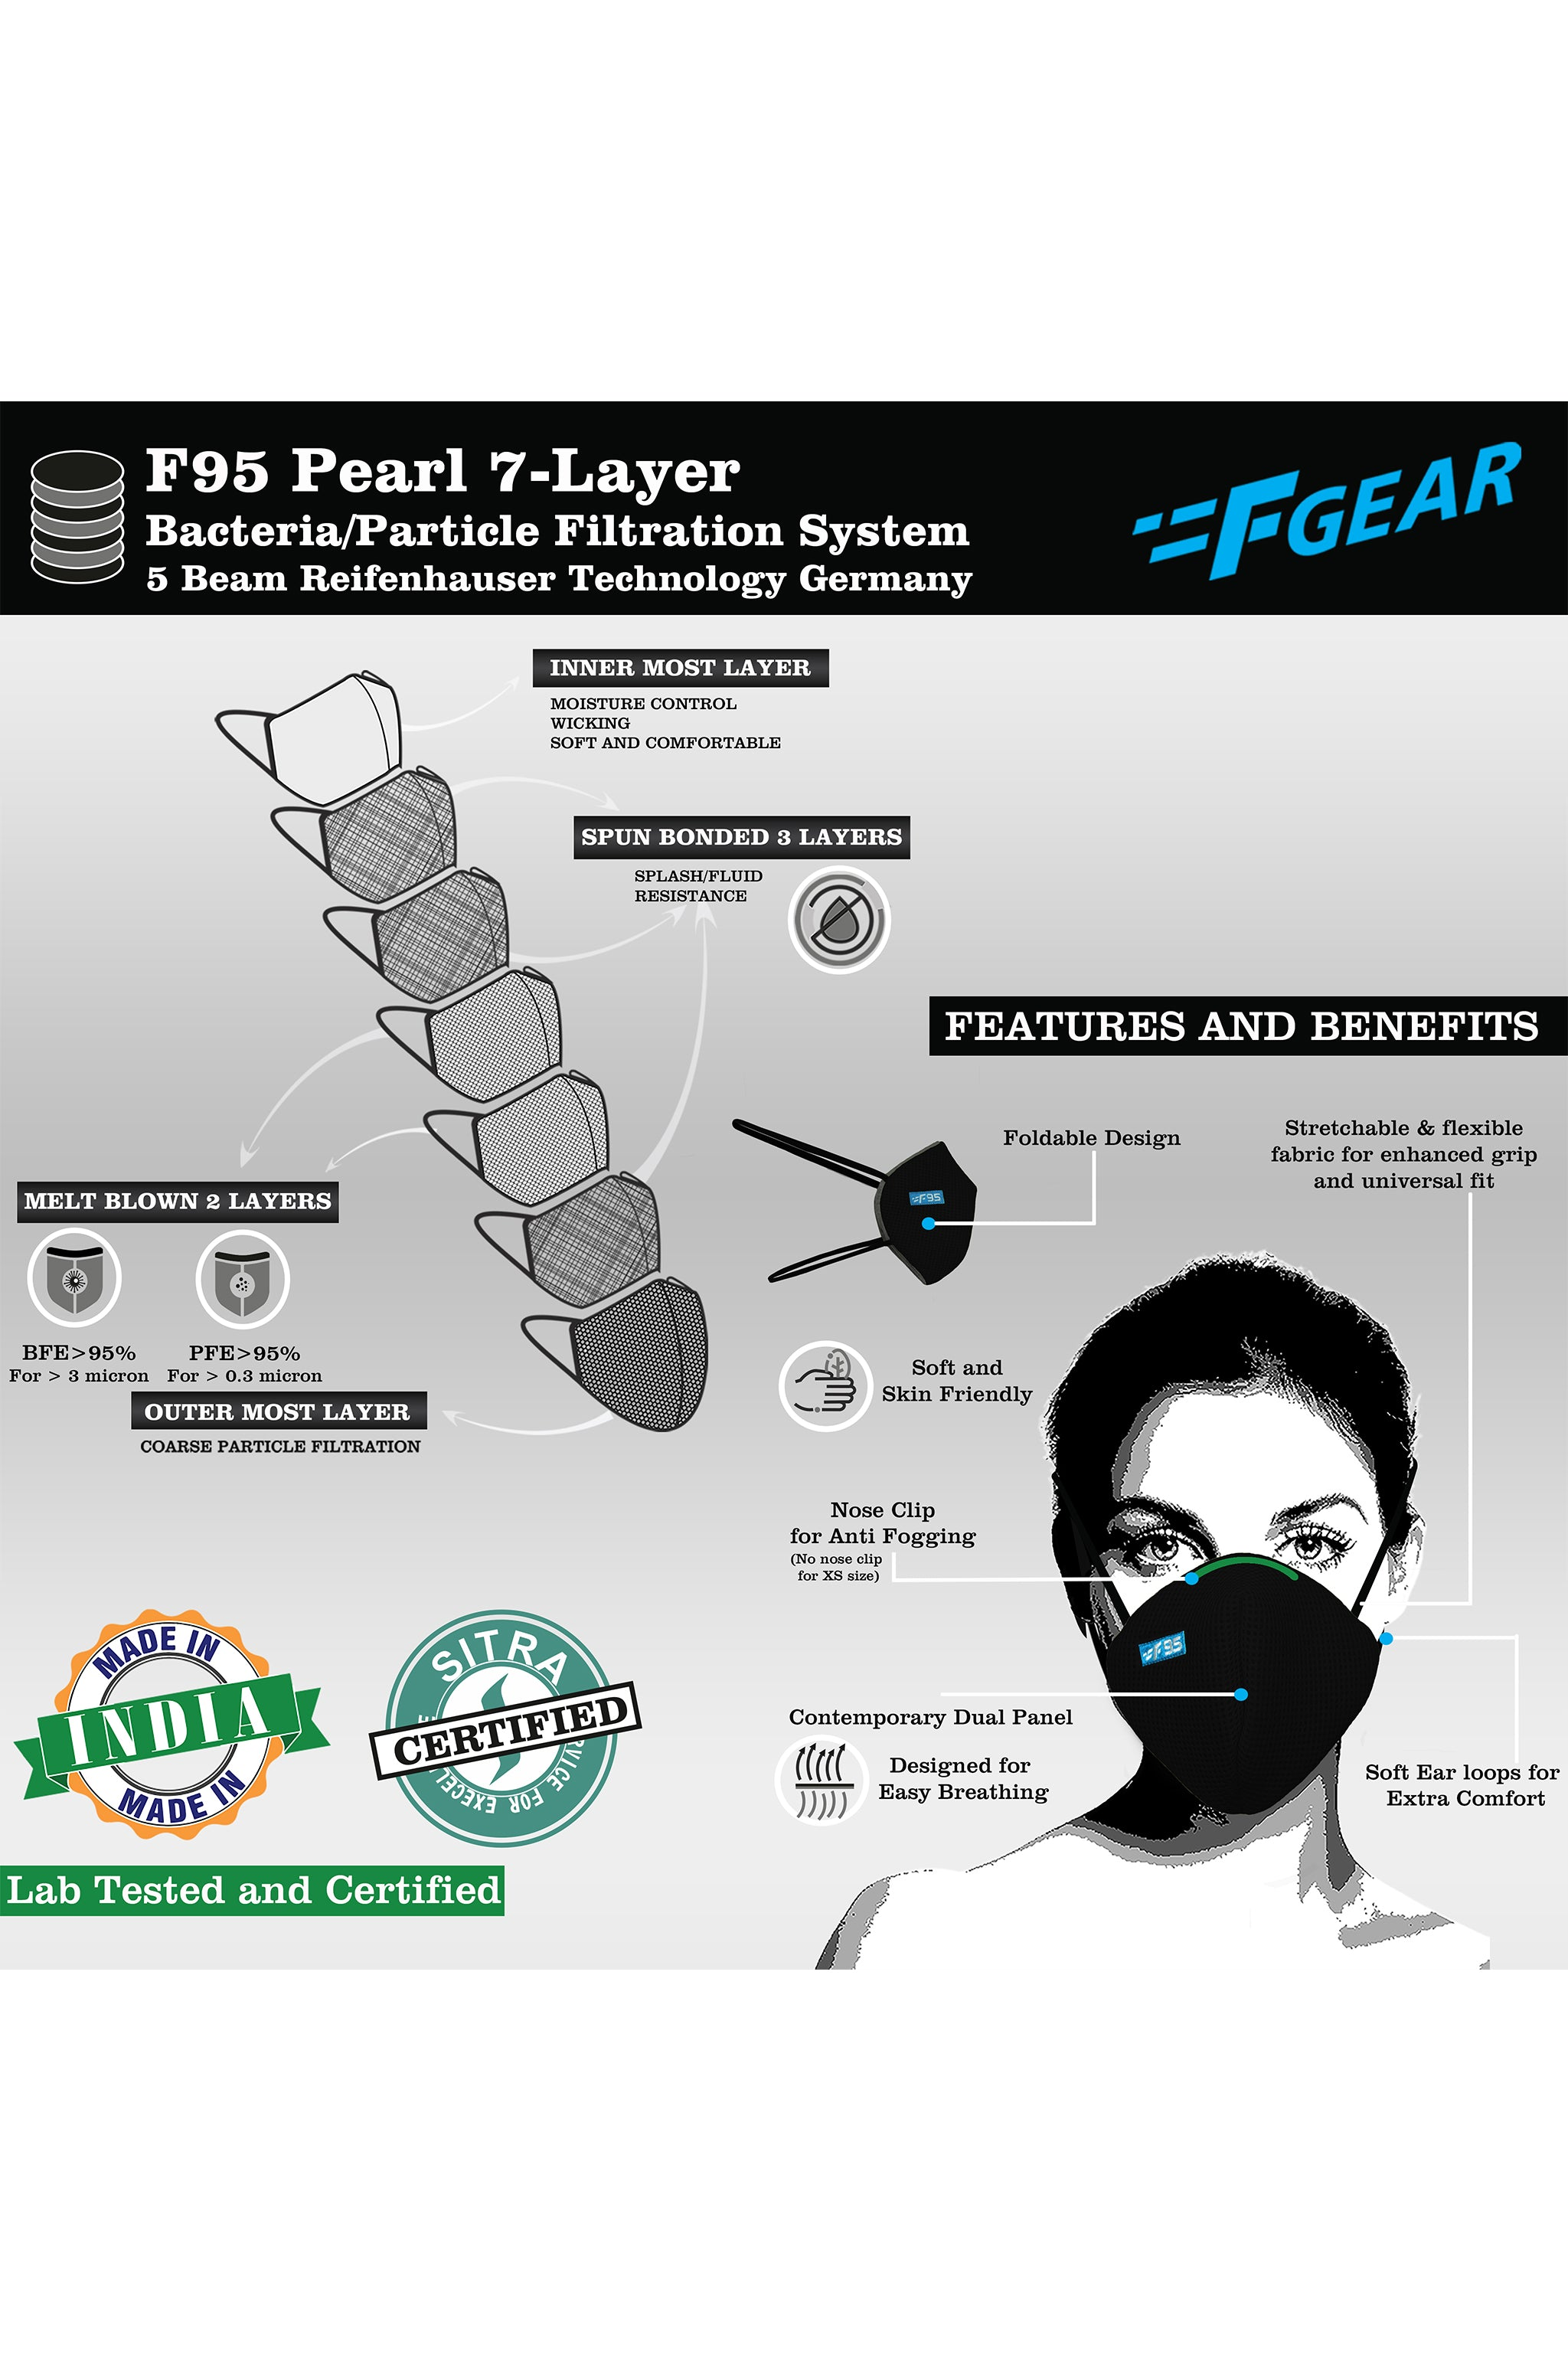 F Gear Pearl F95 Mask Black-Grey-White 7 layer ISO CE SITRA lab certified >95% Bacteria Filtration PACK-3